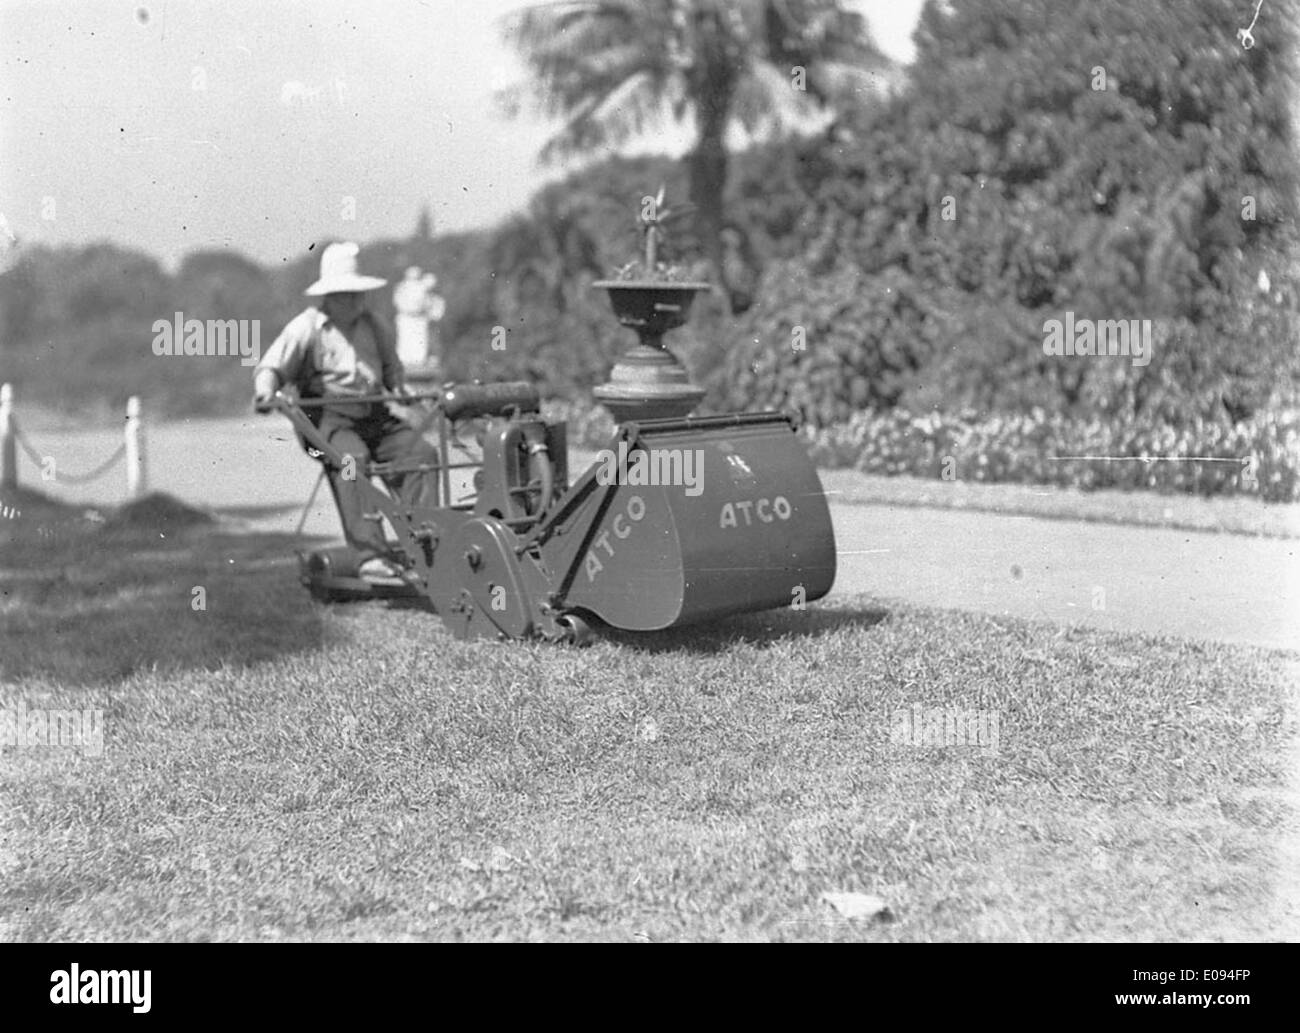 Gardener on Atco ride-on lawn mower, c. 1932, by Ted Hood Stock Photo